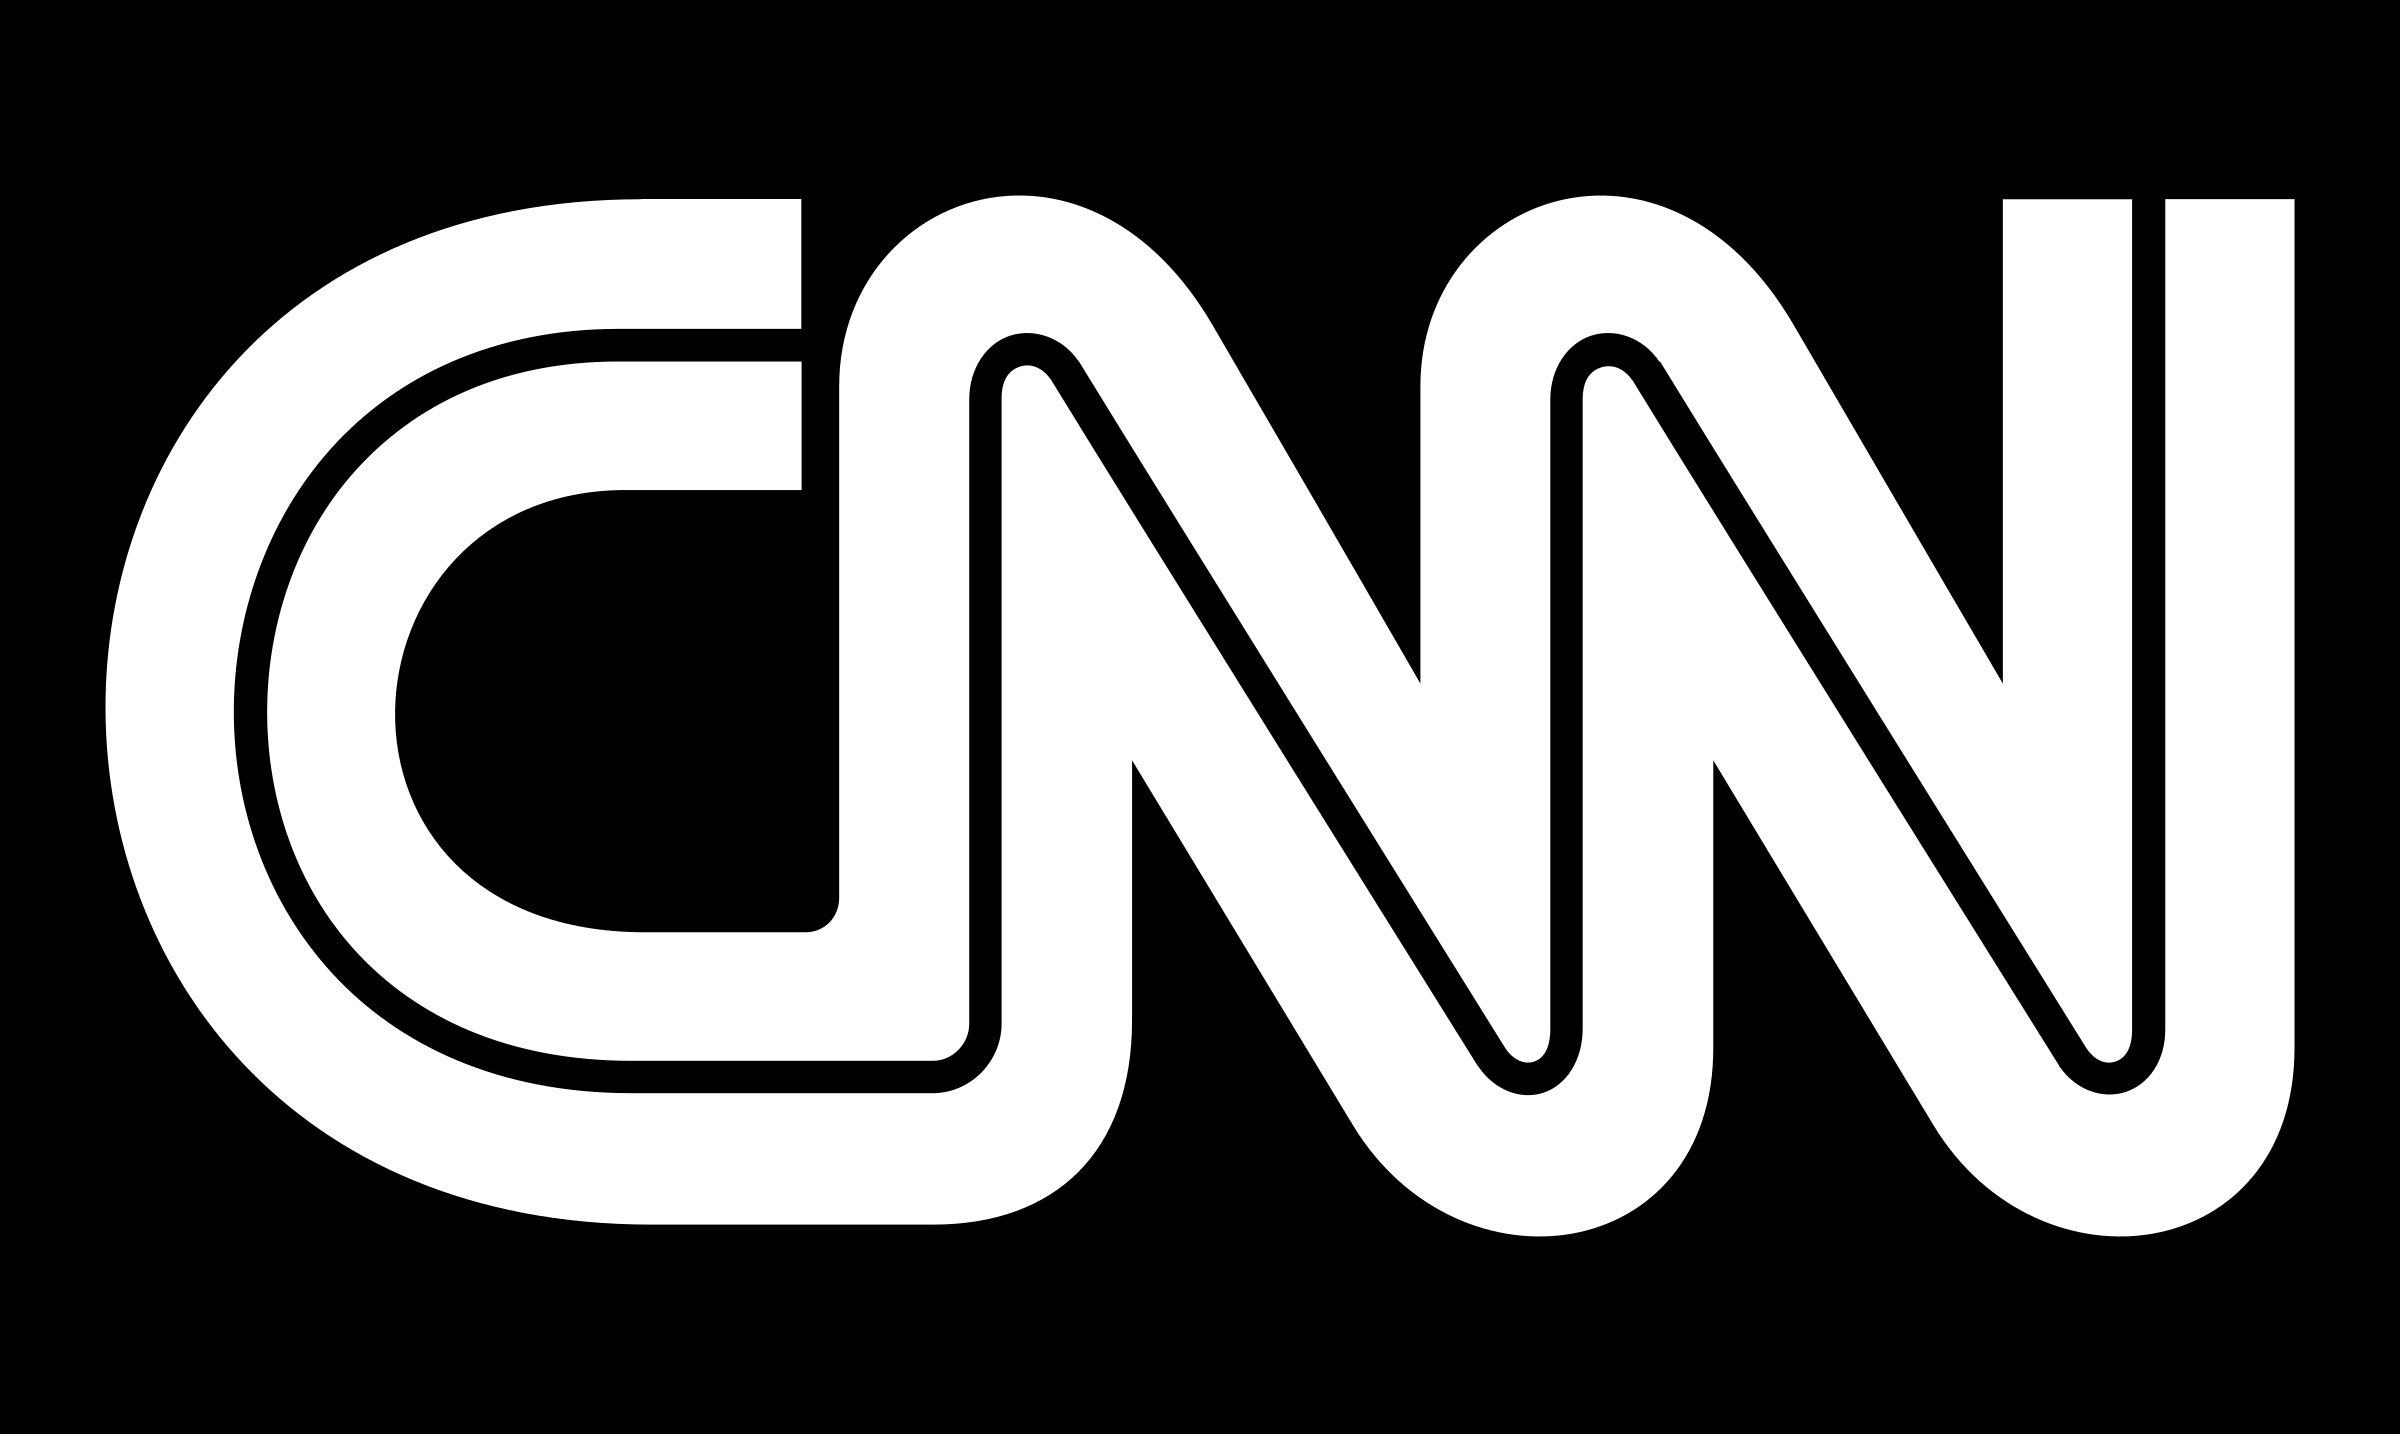 Download Free Png Cnn Logo Png (96  Images In Collection) Page 3 Pluspng.com  - Cnn Logo PNG